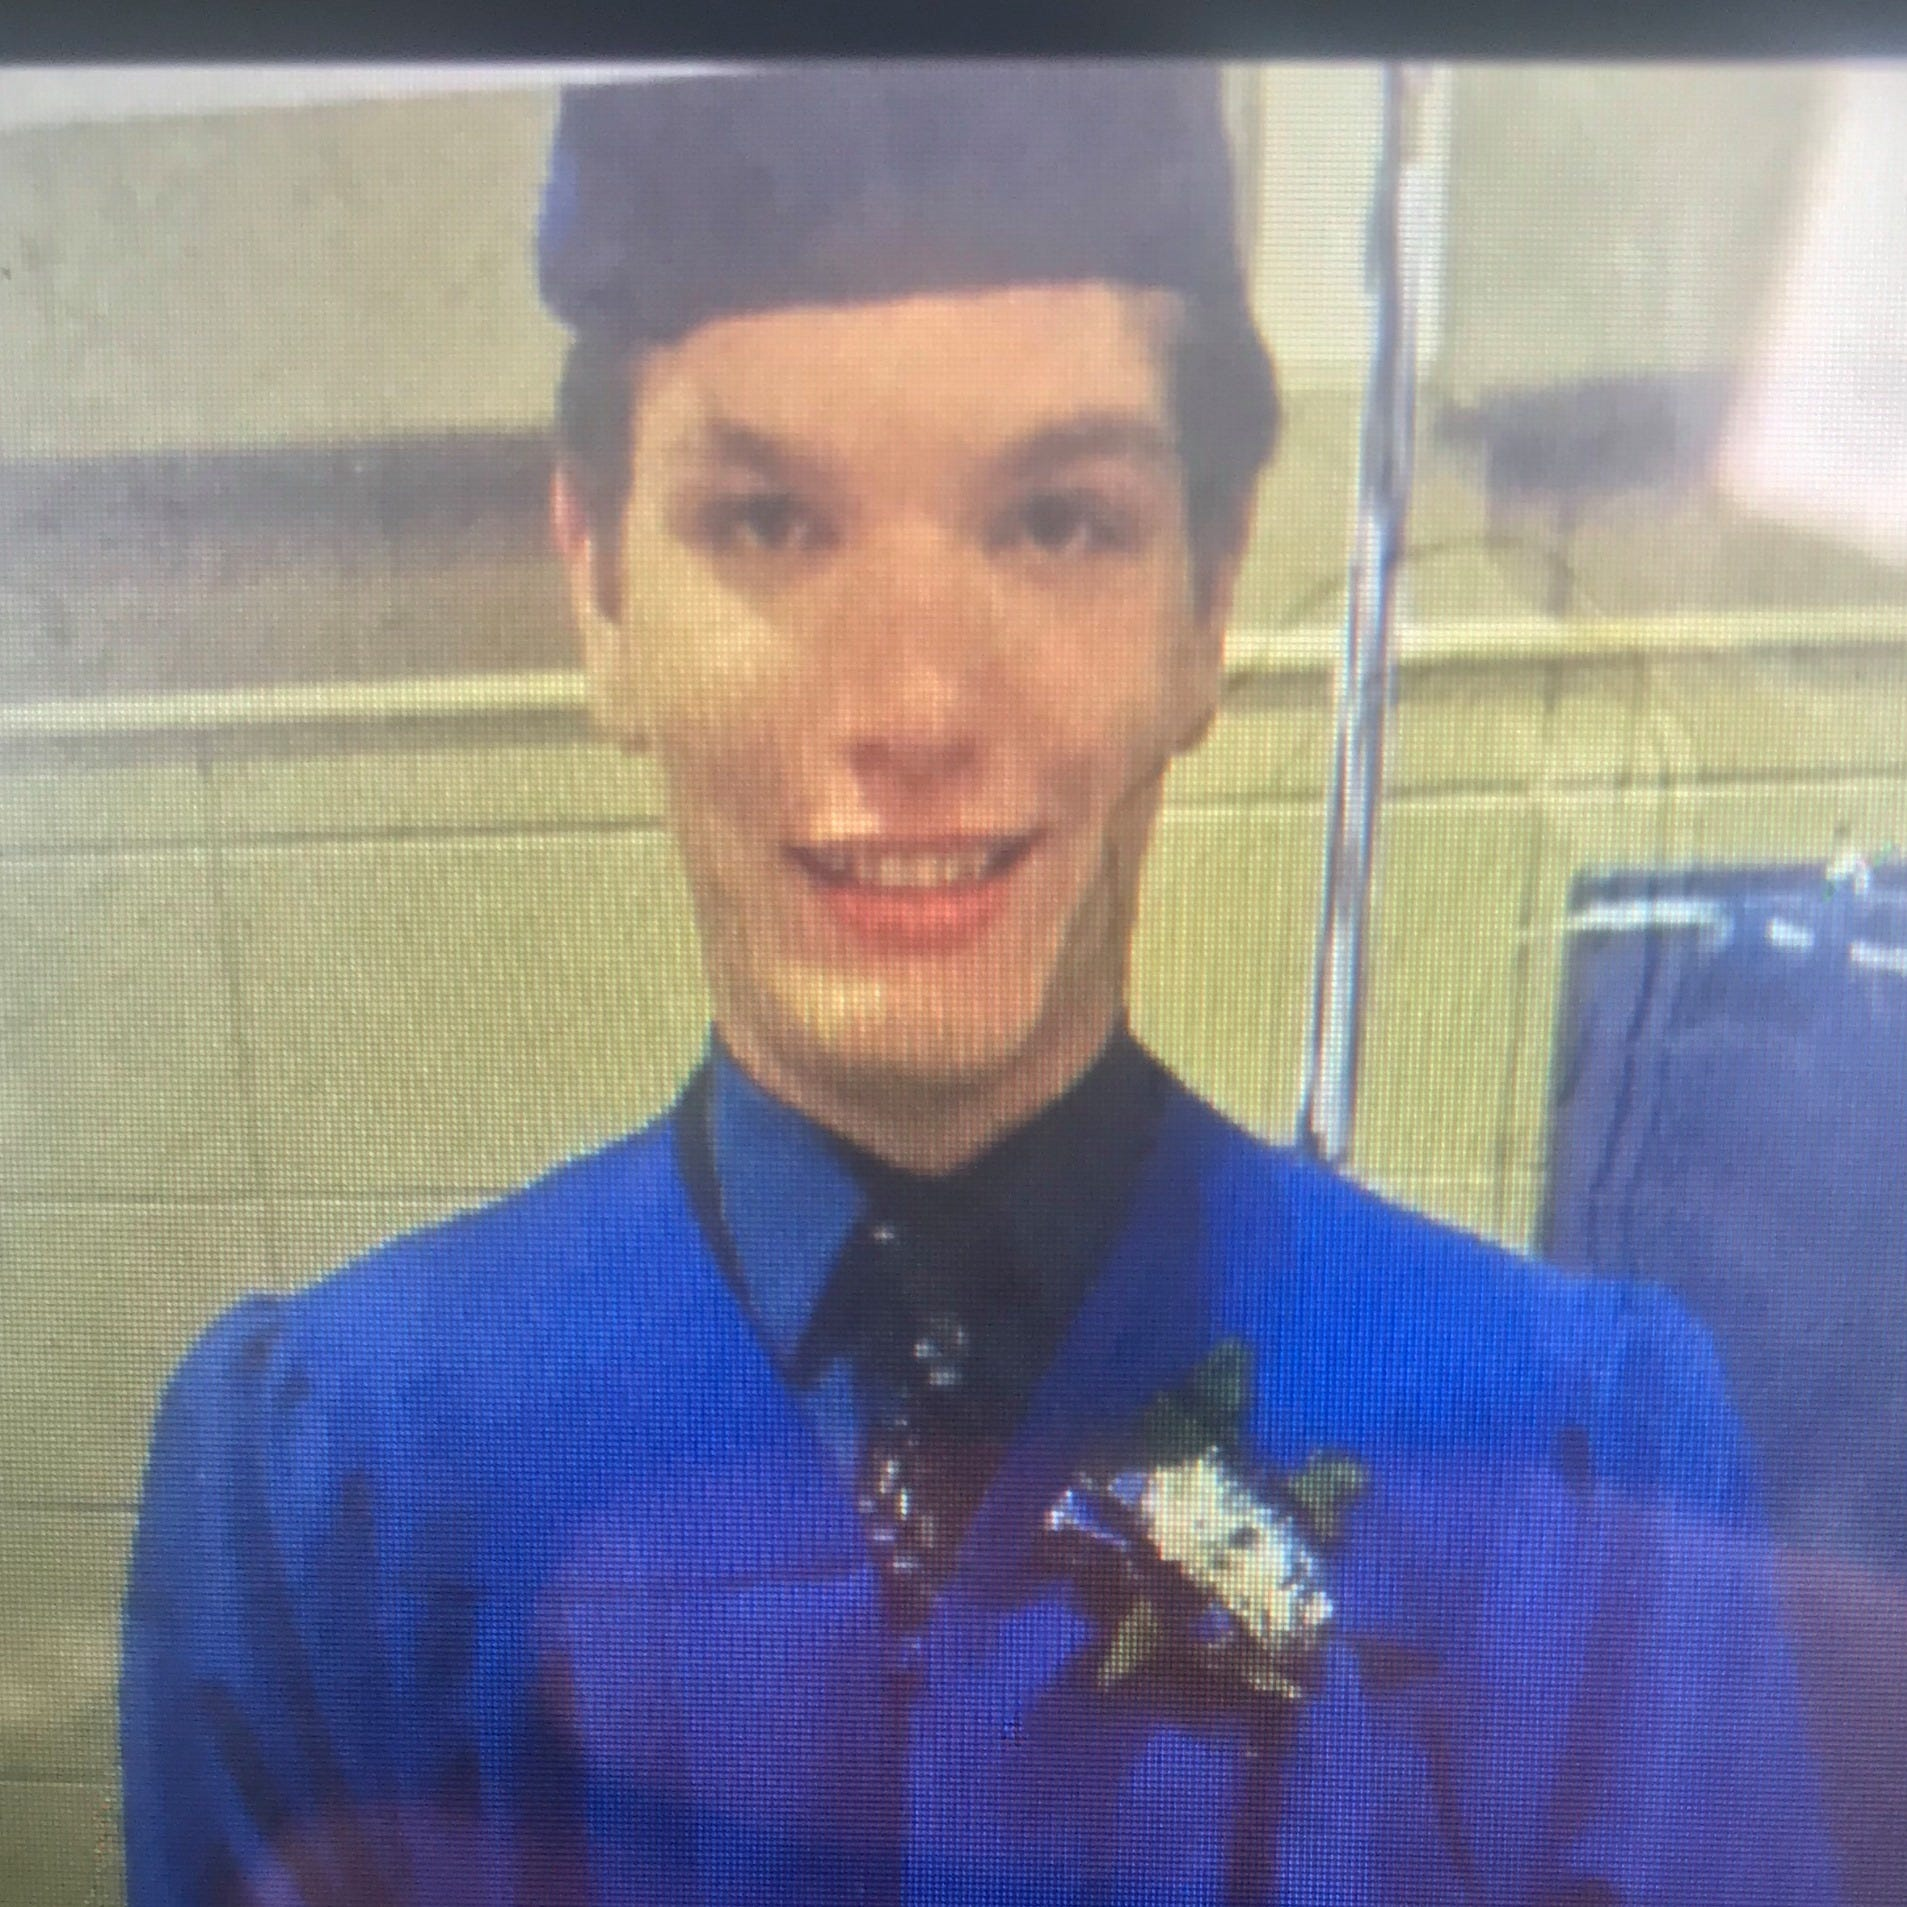 Missing 20-year-old found safe in Sioux Falls